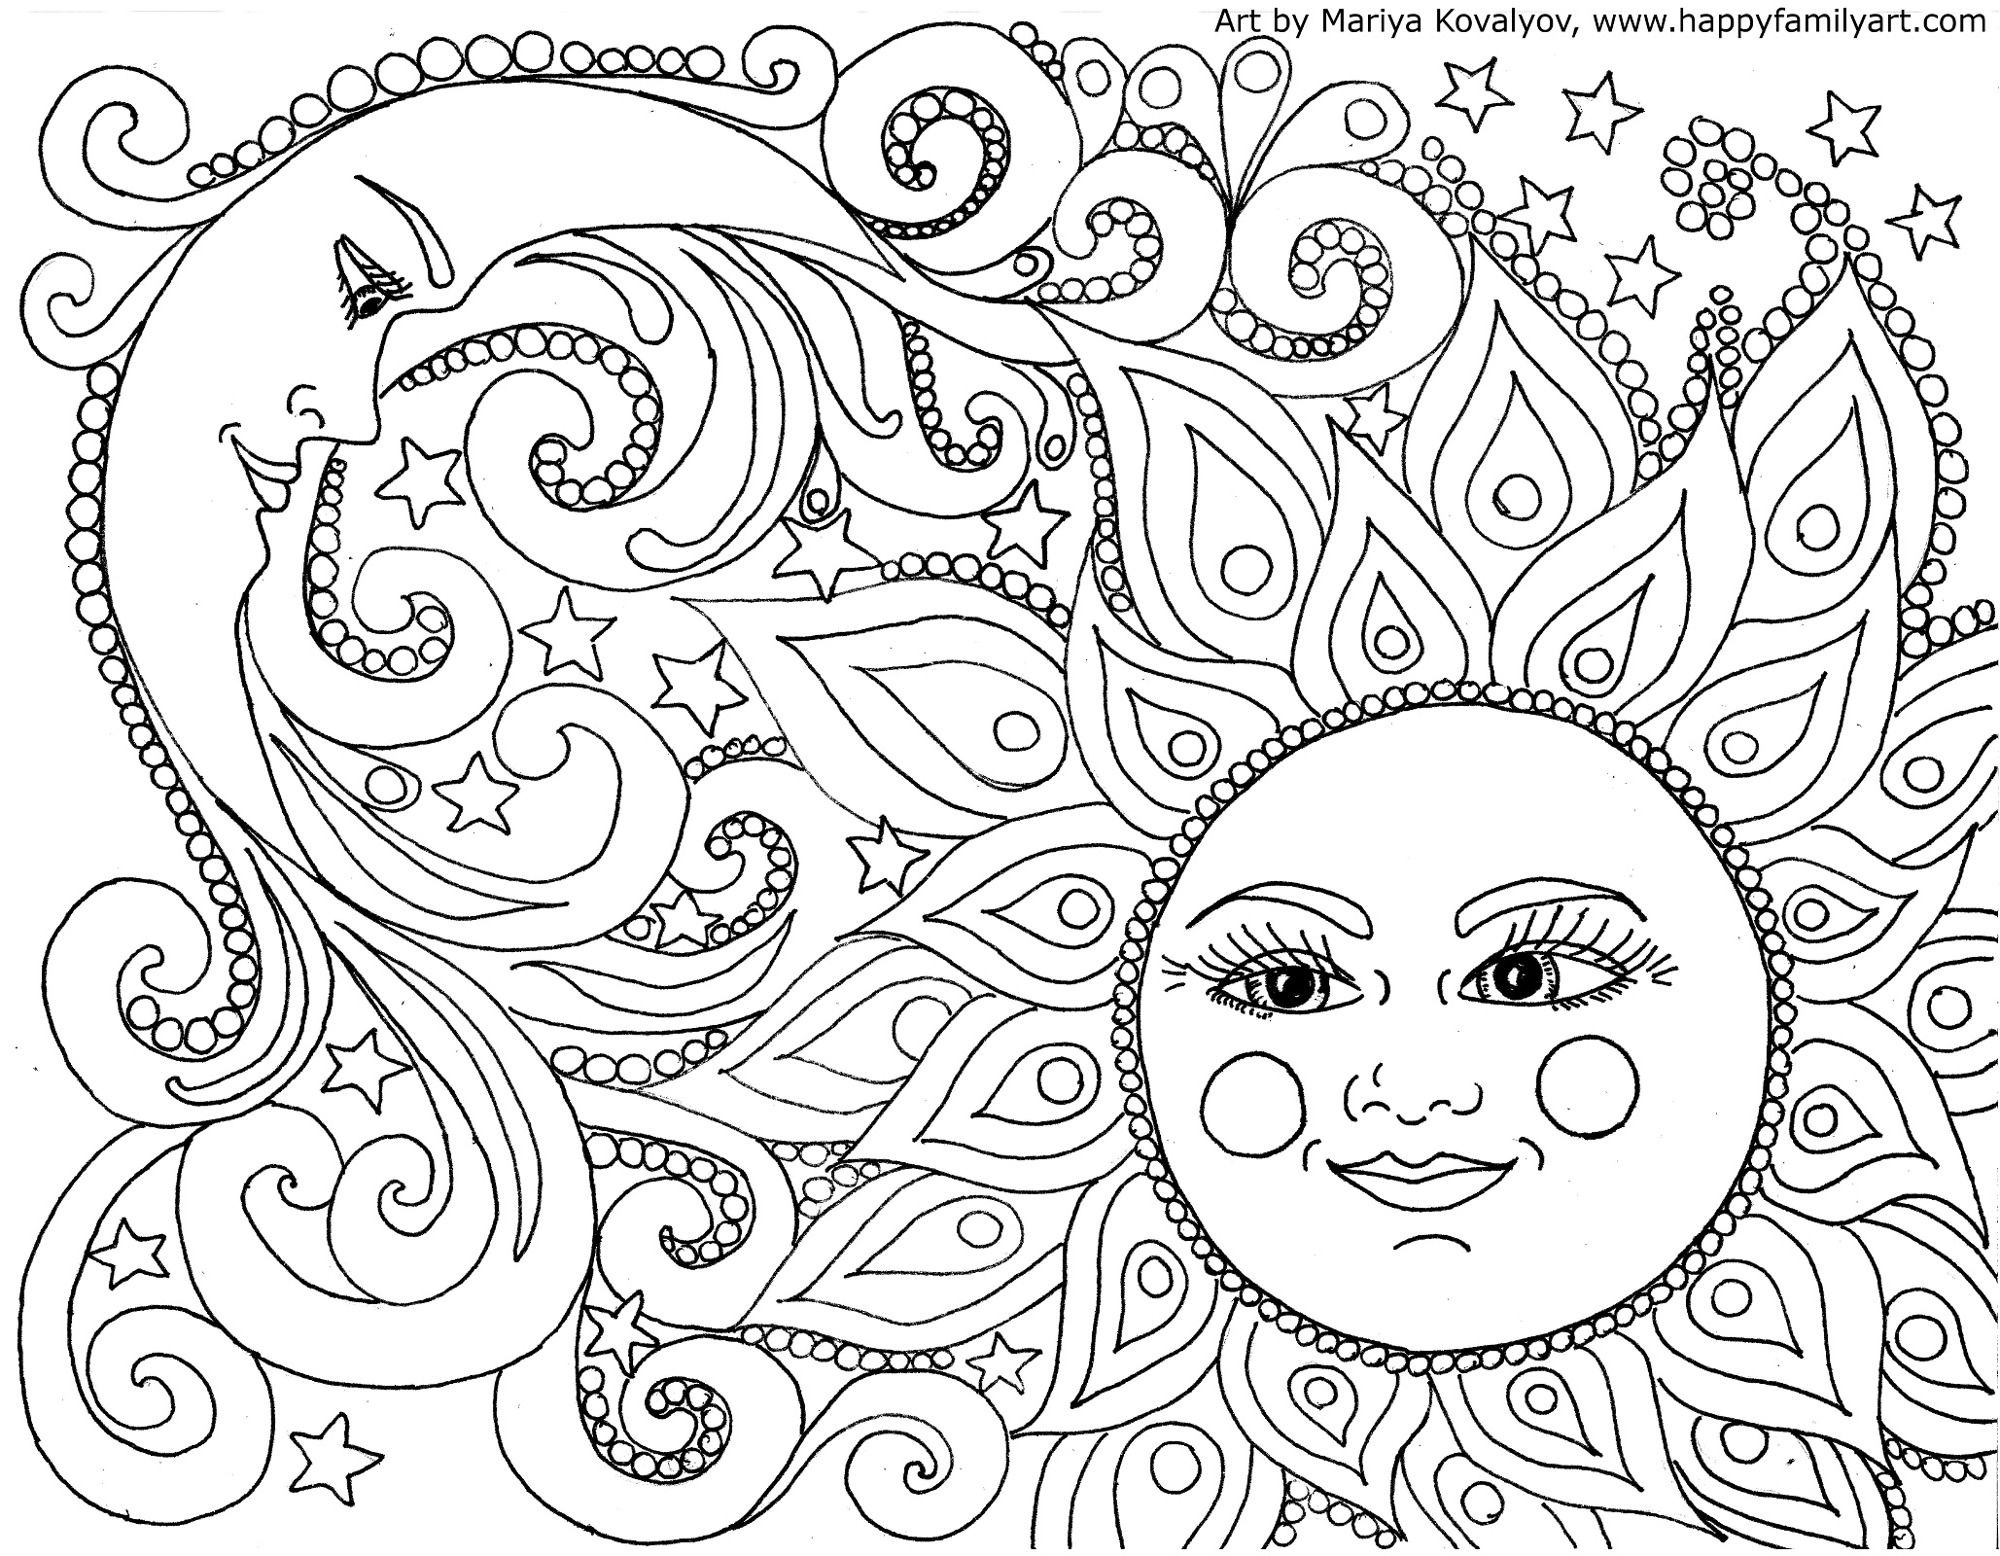 showing kindness coloring pages Collection-Free Color Page Showing Kindness Coloring Pages Awesome Awesome Od Dog Coloring 4-c